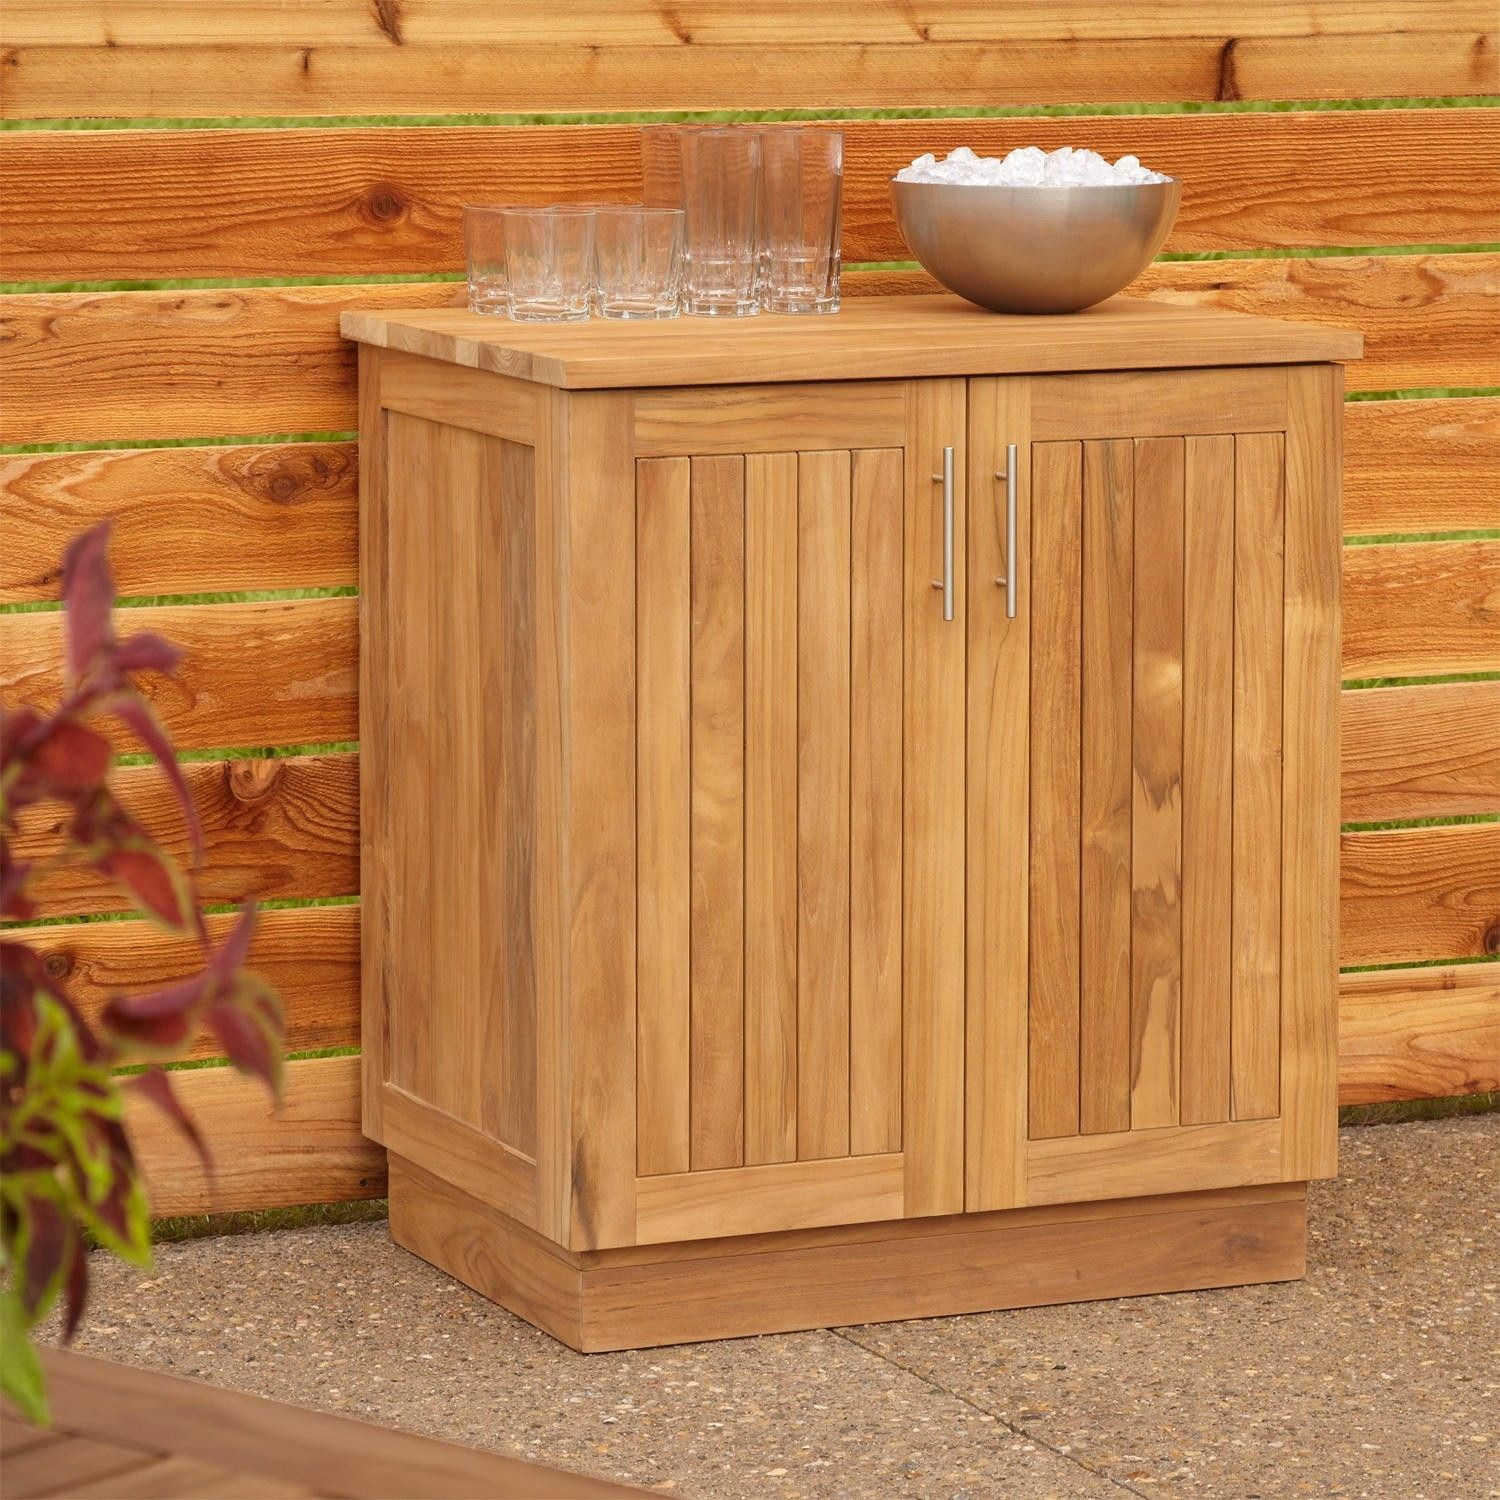 9+ Outdoor Wood Storage Cabinets with Doors   Kitchen Decor theme ...